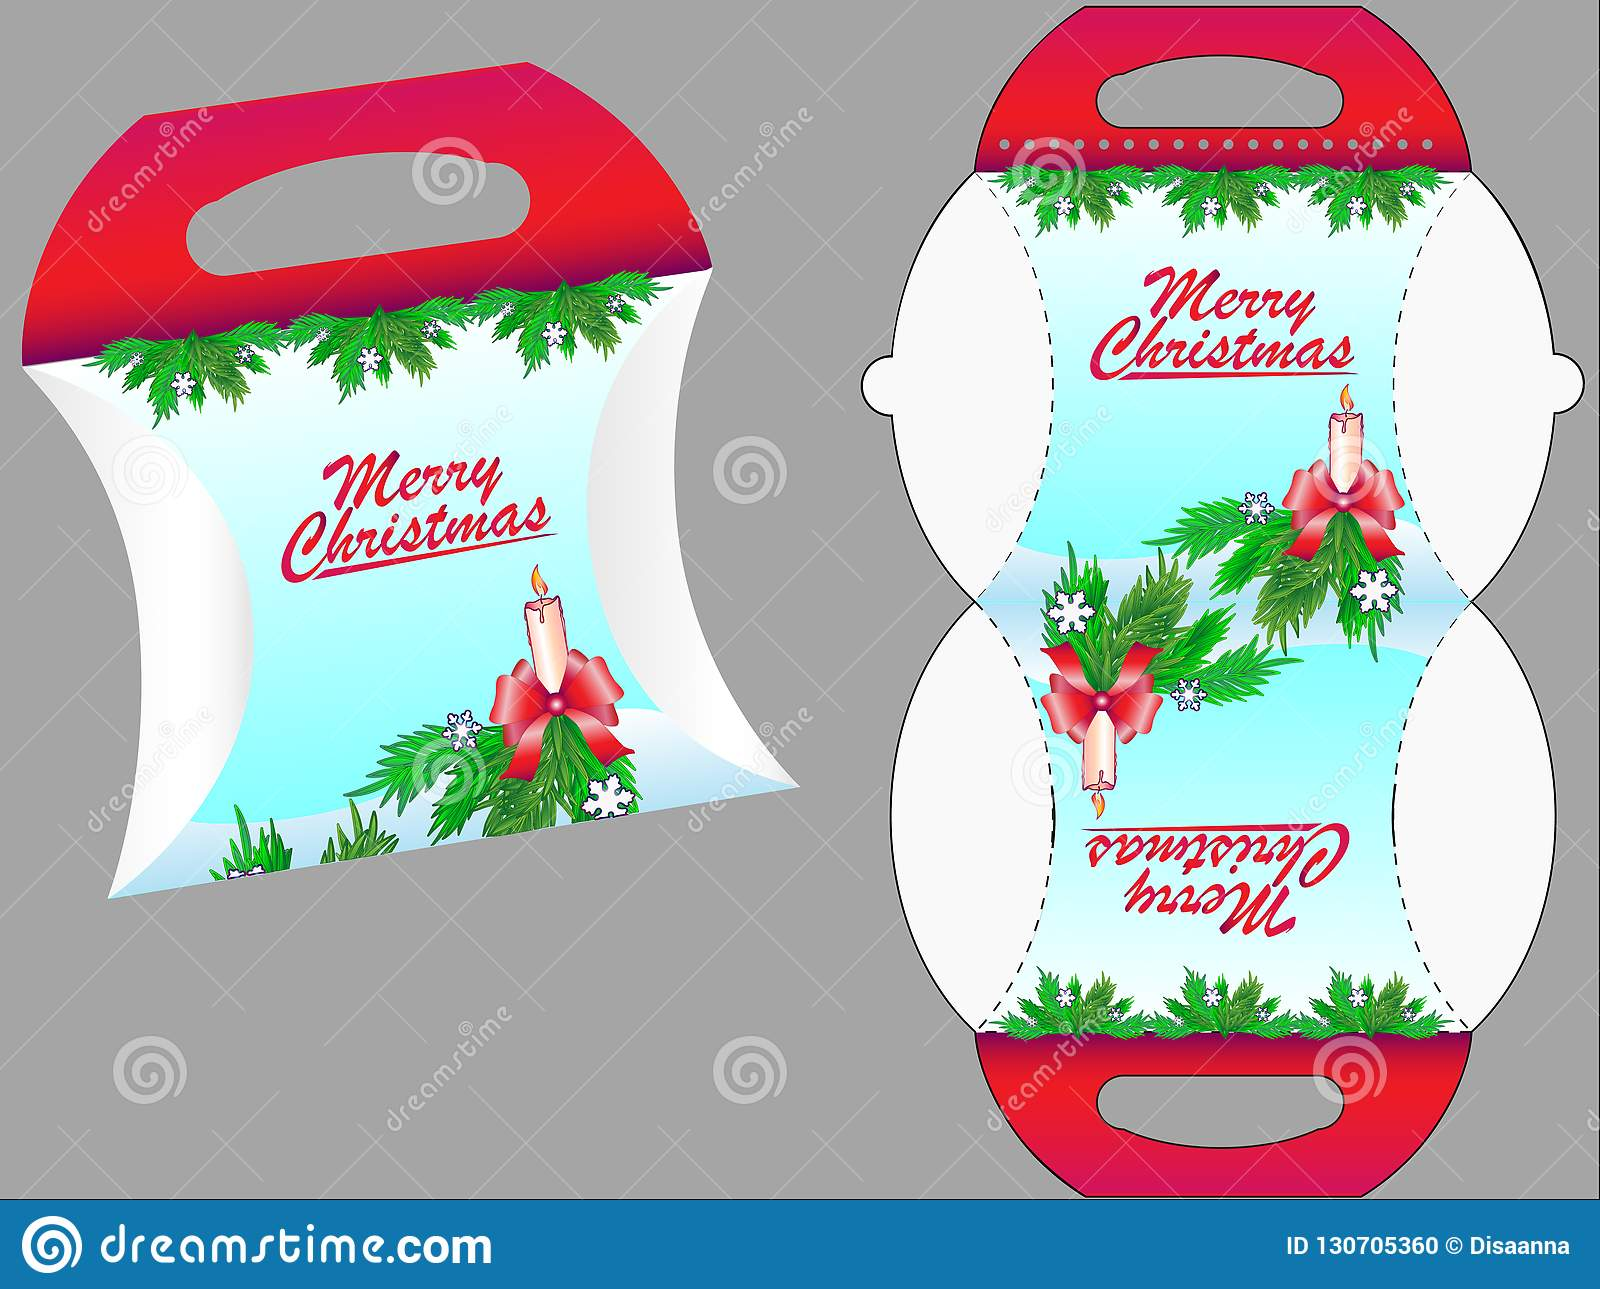 Gift box. Gift box template for sweets or other christmas gifts.